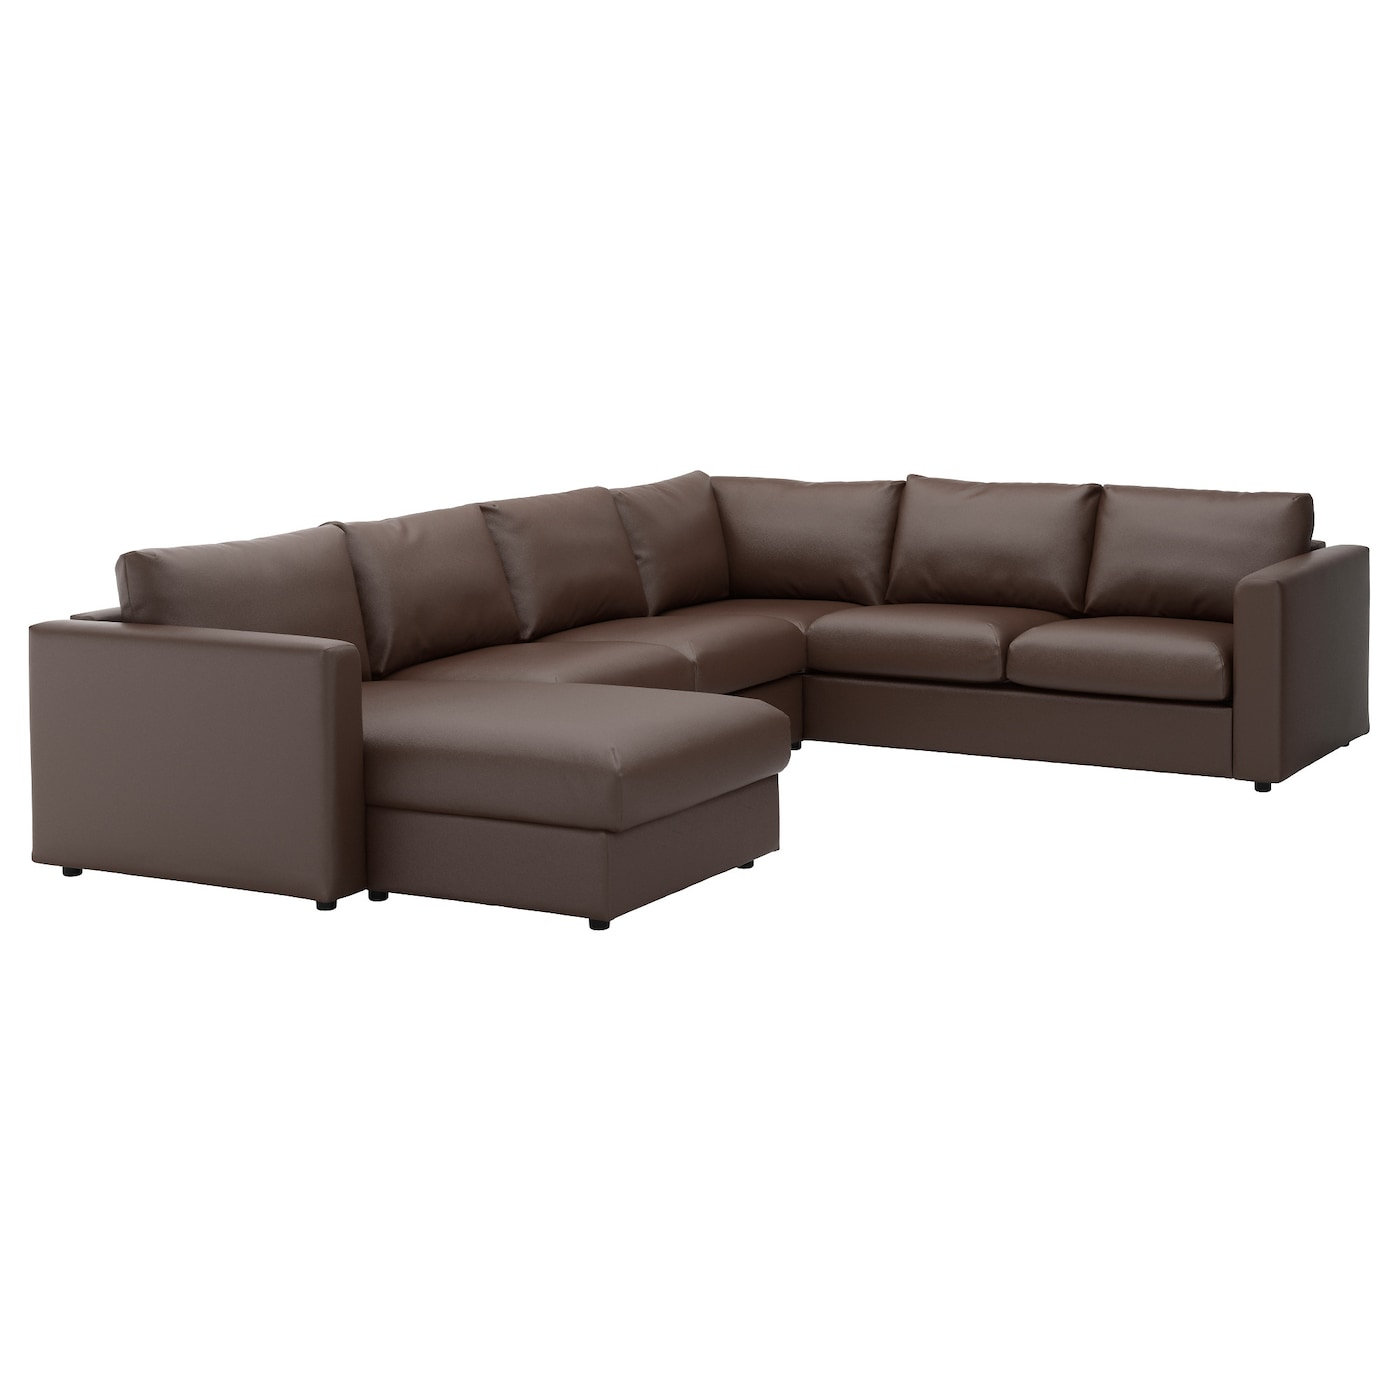 Vimle corner sofa 5 seat with chaise longue farsta dark for Brown sectional sofa with chaise